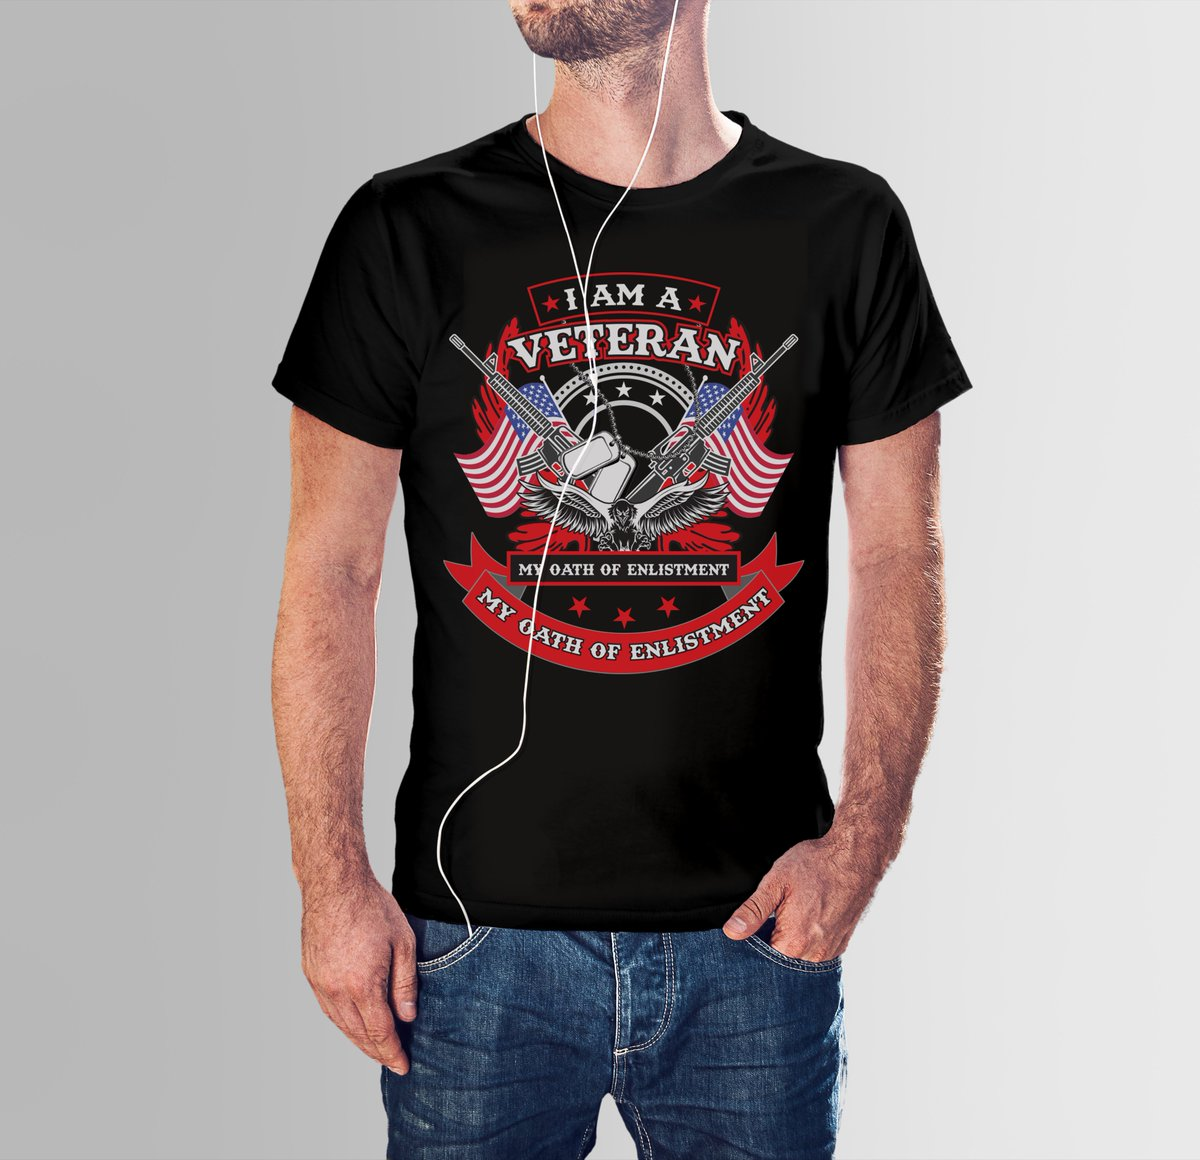 This is My another Fishing T-shirt design for my Clint. For Your design please  Visit here: https://t.co/ipvBX4i15p  #WDWFALLINMV #NationalCoffeeDay #Dembele #BUMP #JusticeForManishaValmiki #ポケモン #Ryeowook #2MHugForBright #Titans #chan #アカシア #USA #Veterans #Barry #Jenkins https://t.co/j9IHM5hDiX